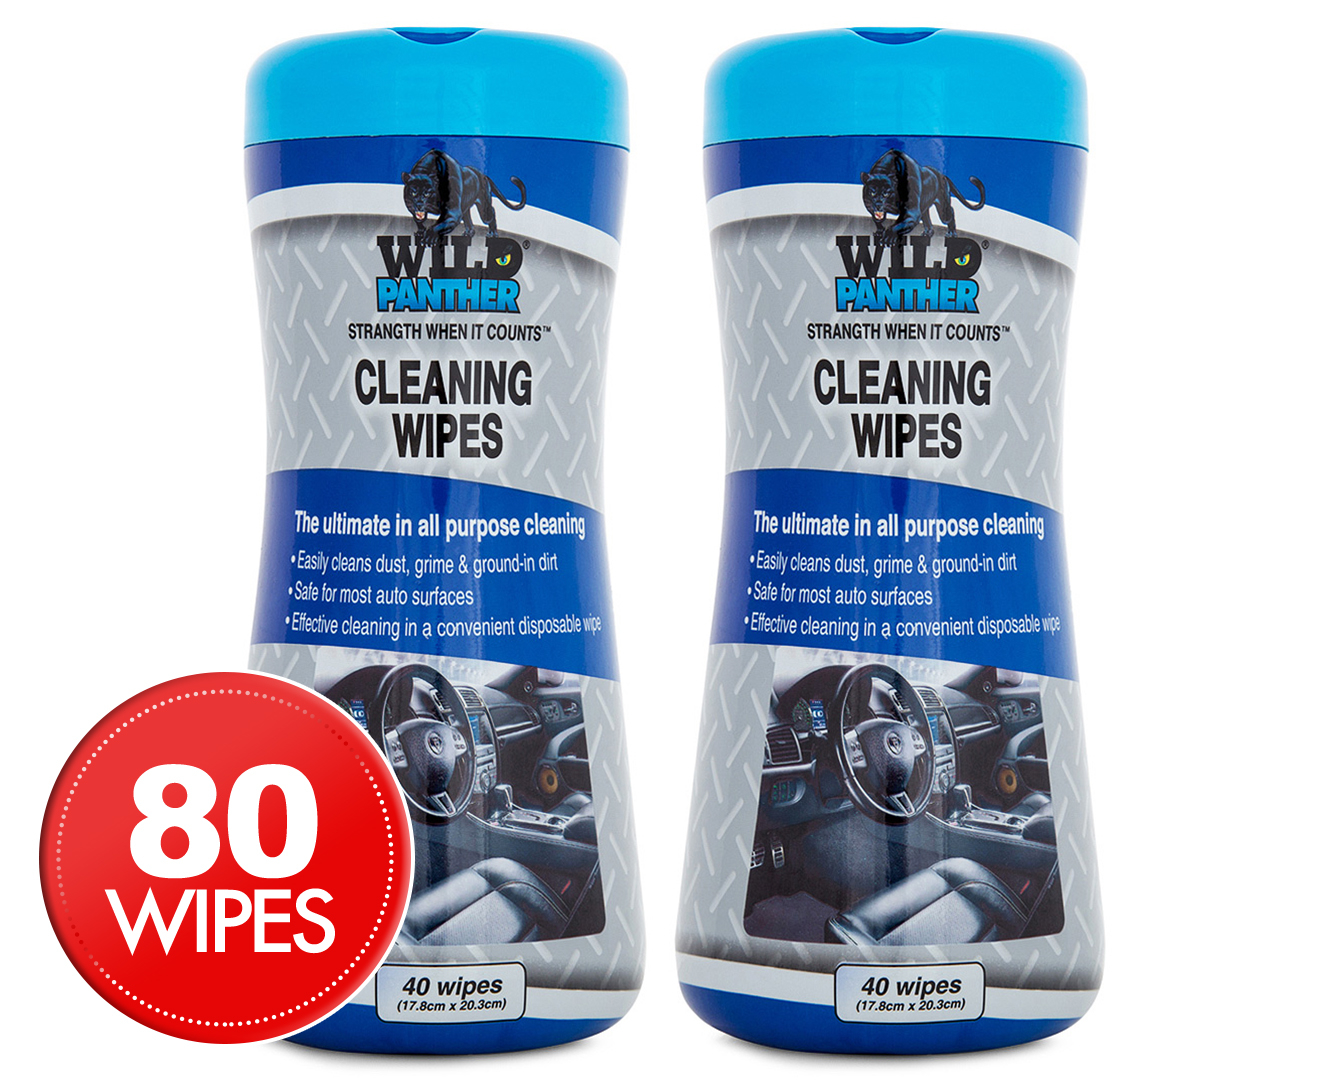 2 x wild panther cleaning wipes 40pk great daily deals at australia 39 s favourite superstore. Black Bedroom Furniture Sets. Home Design Ideas